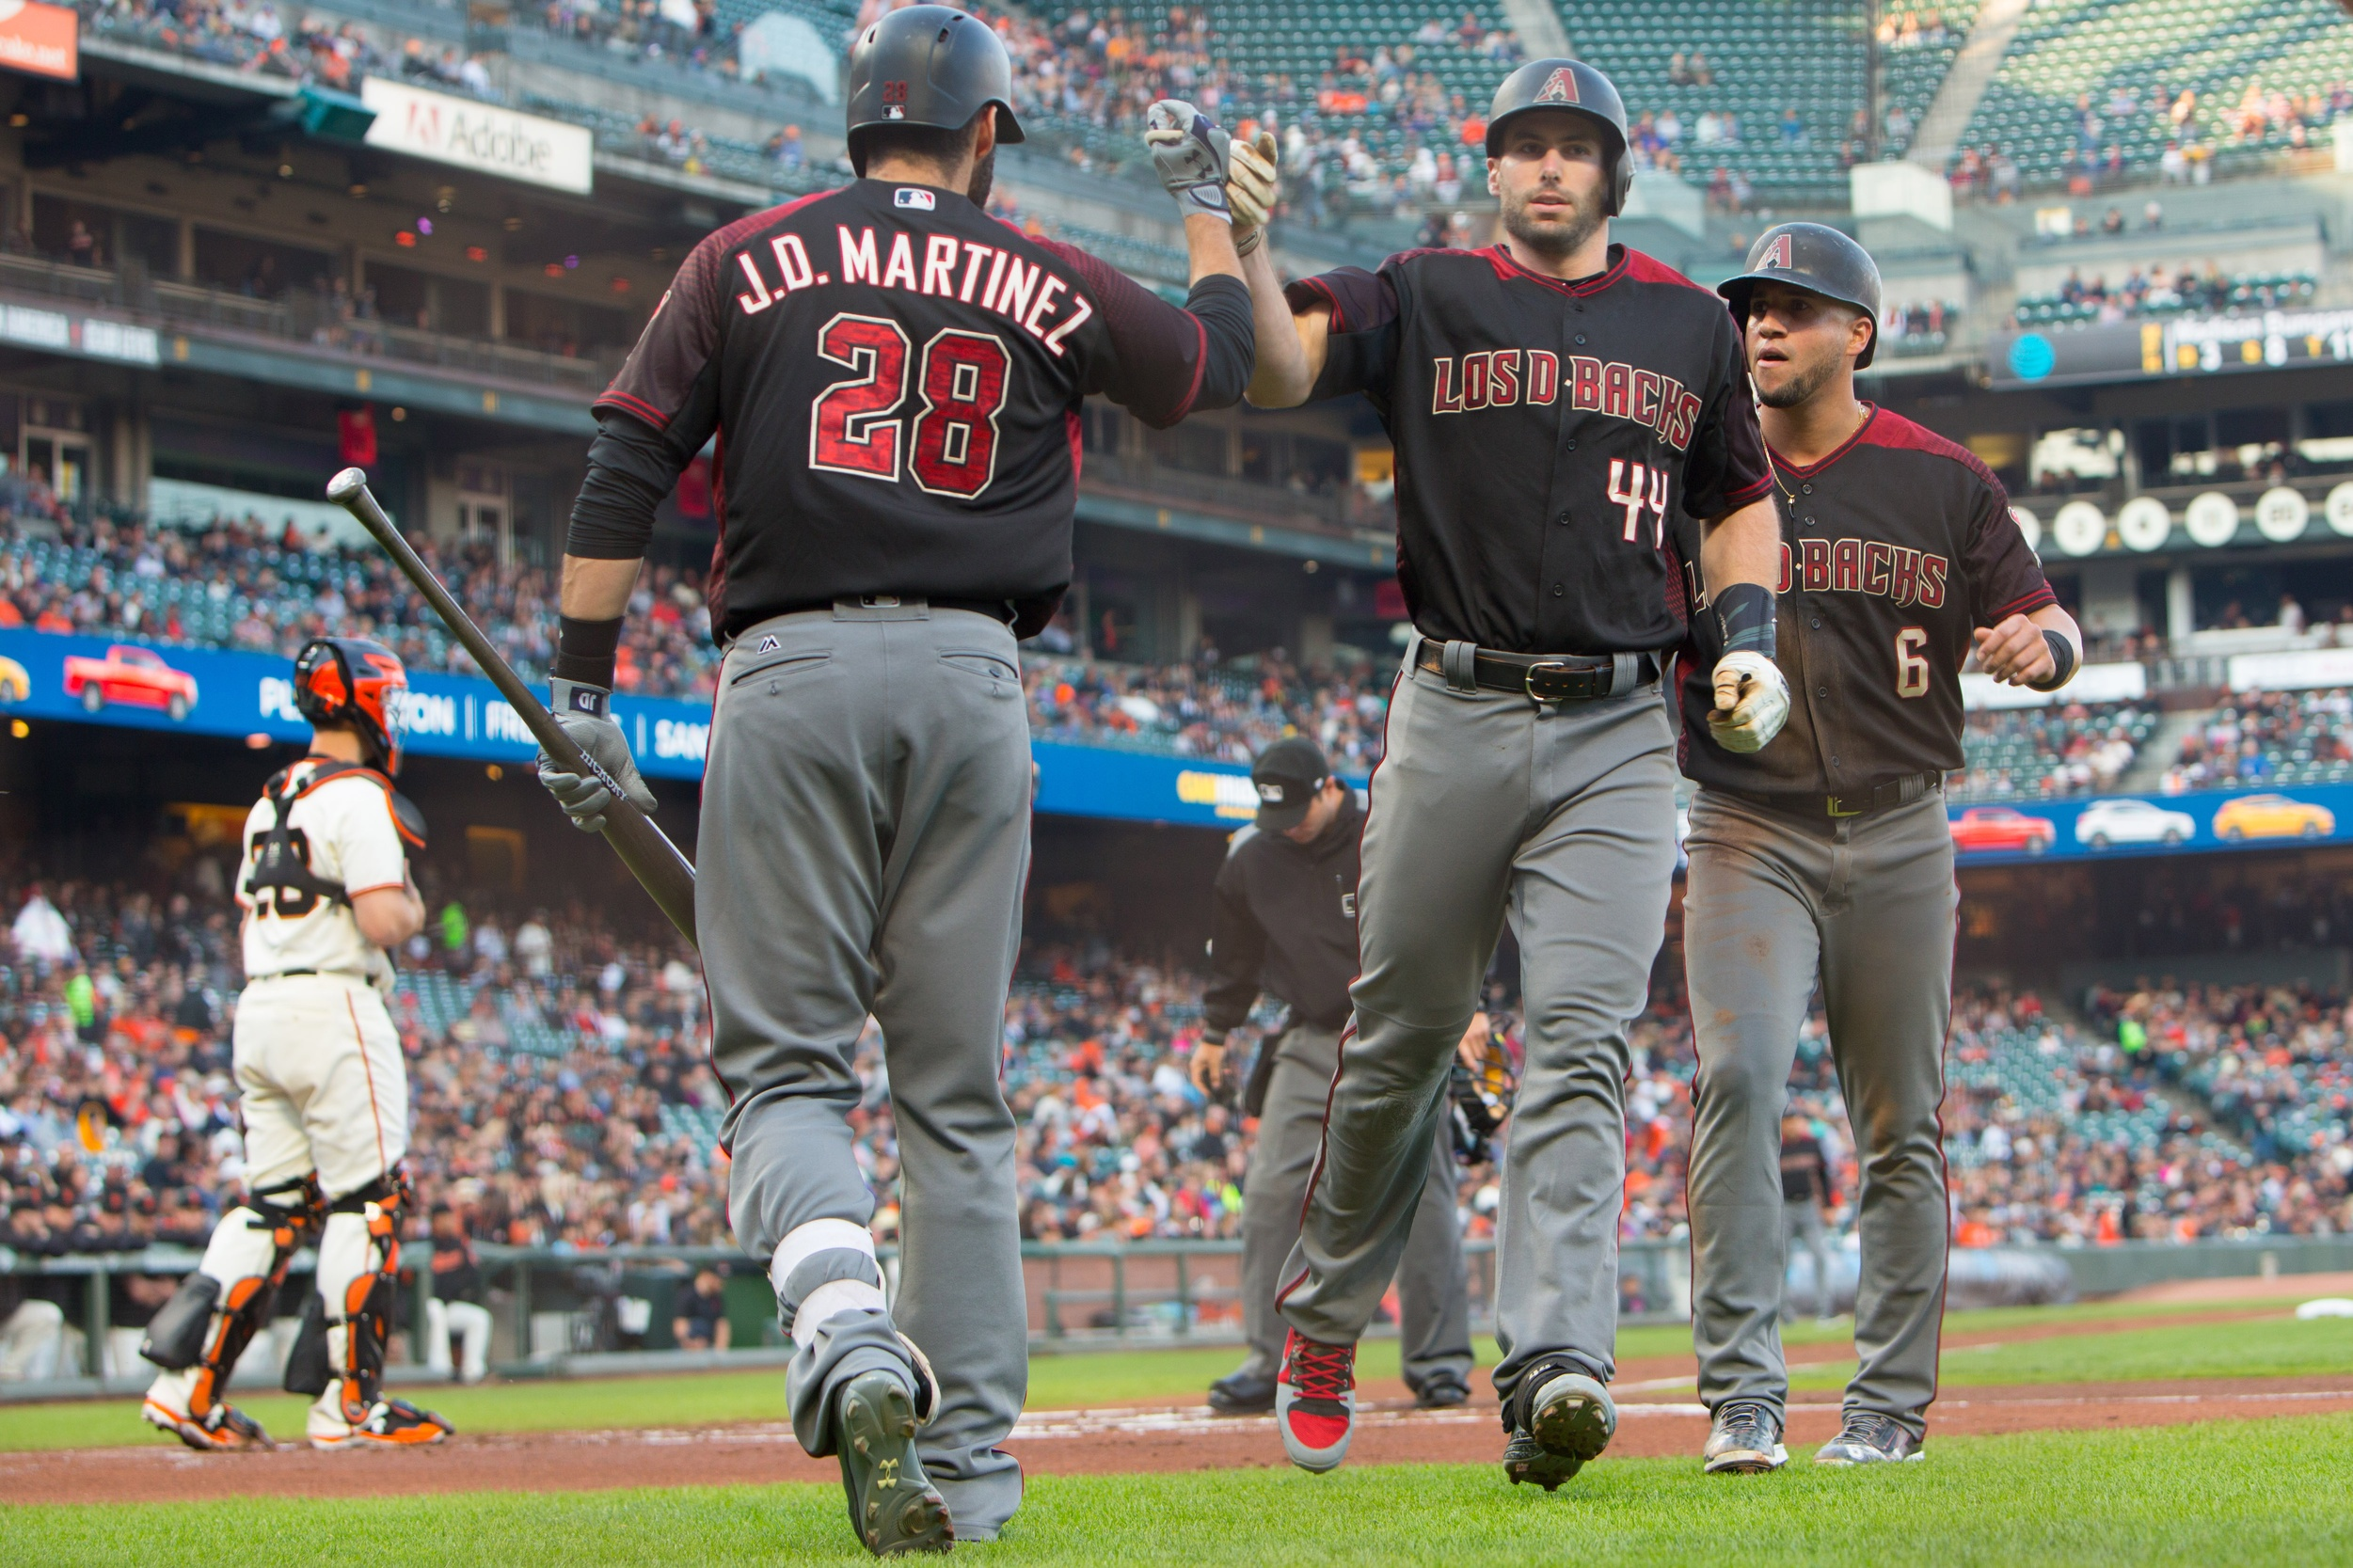 Sep 16, 2017; San Francisco, CA, USA; Arizona Diamondbacks first baseman Paul Goldschmidt (44) high fives right fielder J.D. Martinez (28) and left fielder David Peralta (6) after hitting a two run home run in the first inning against the San Francisco Giants at AT&T Park. Mandatory Credit: Andrew Villa-USA TODAY Sports